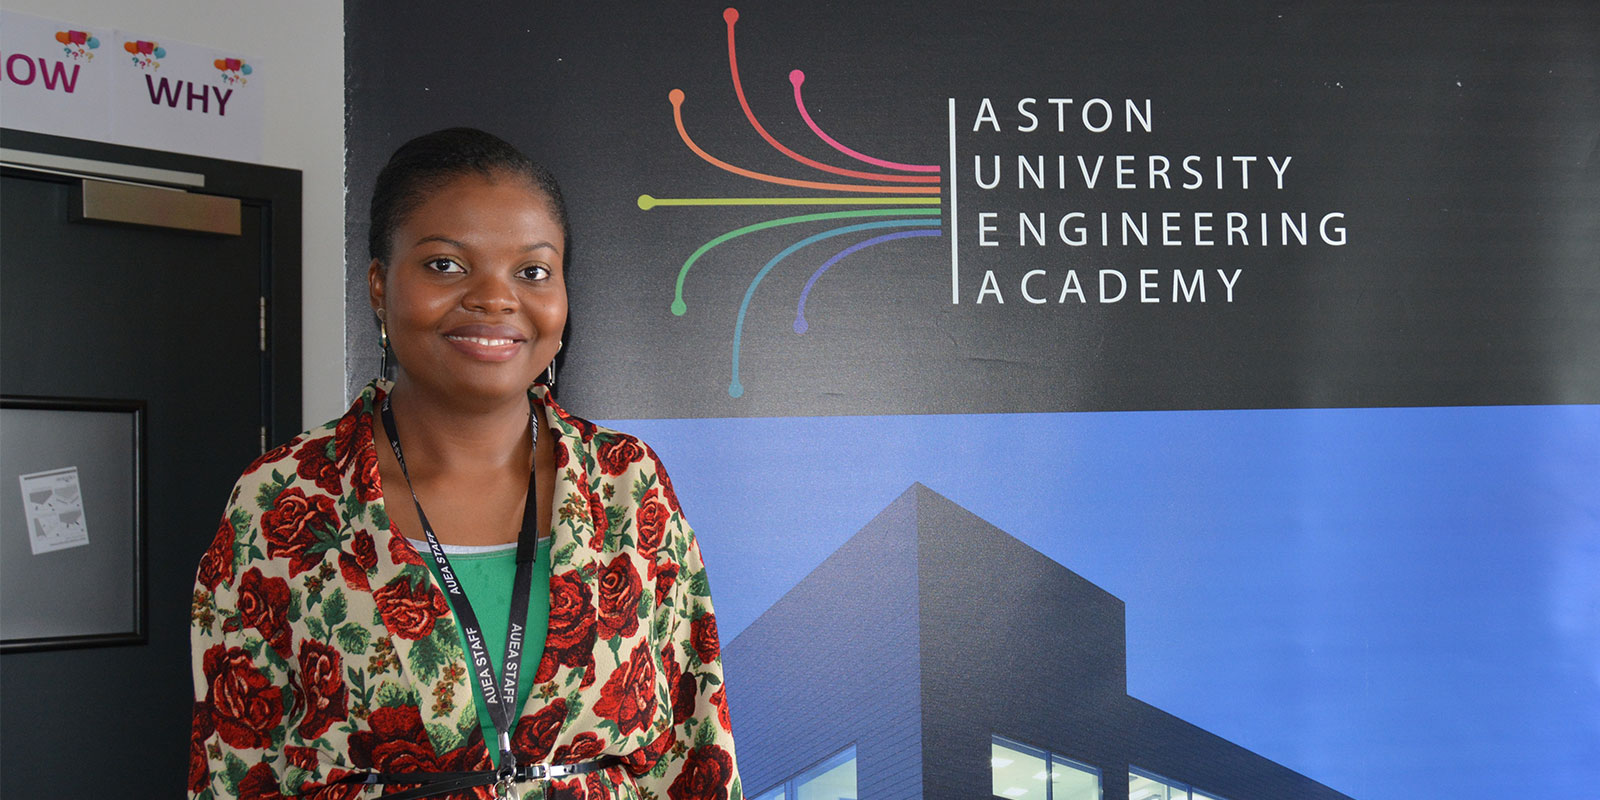 Aston University Engineering Academy - a teacher at the launch of the video cameras